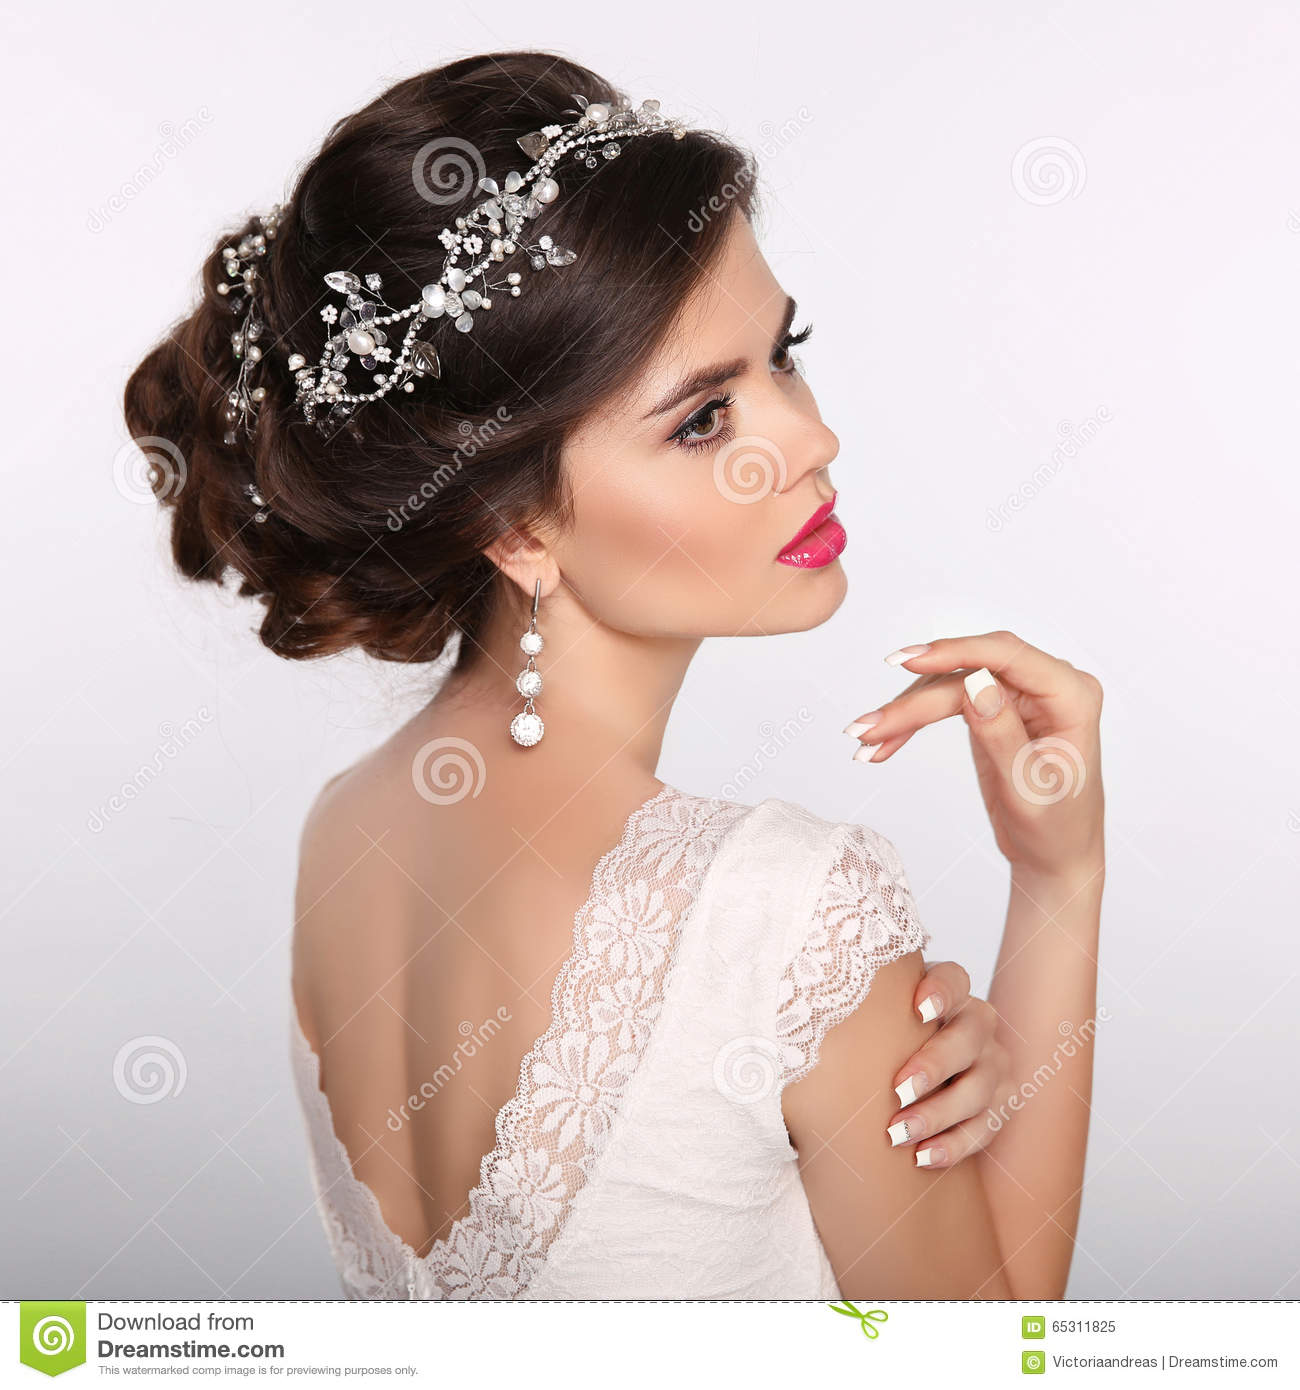 Beauty Woman Portrait Wedding Hairstyle Beautiful Fashion Brid - Wedding hairstyle download